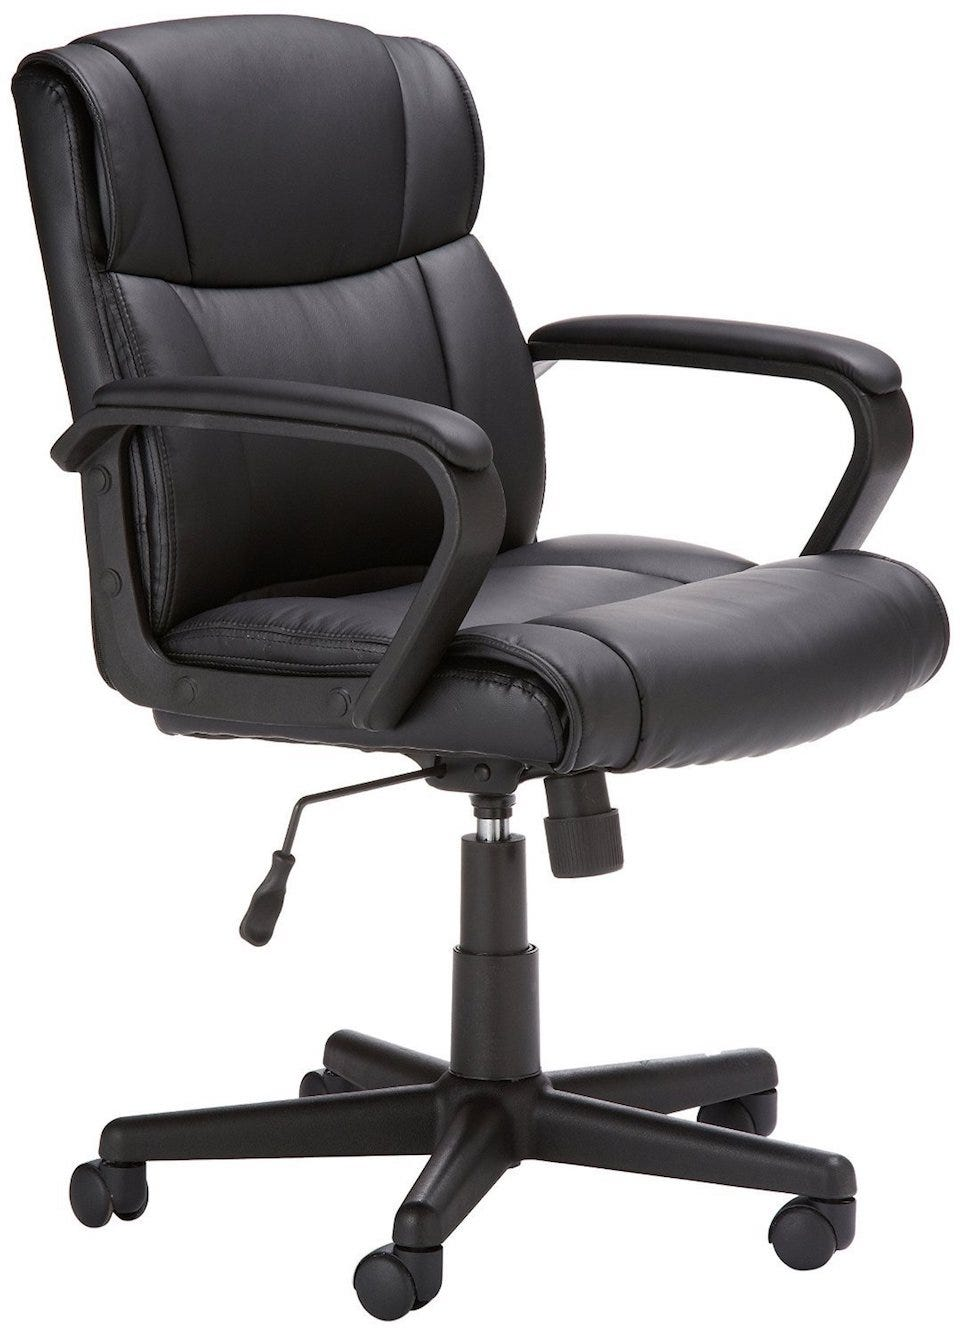 Best For Budgets Basics Mid Back Office Chair 65